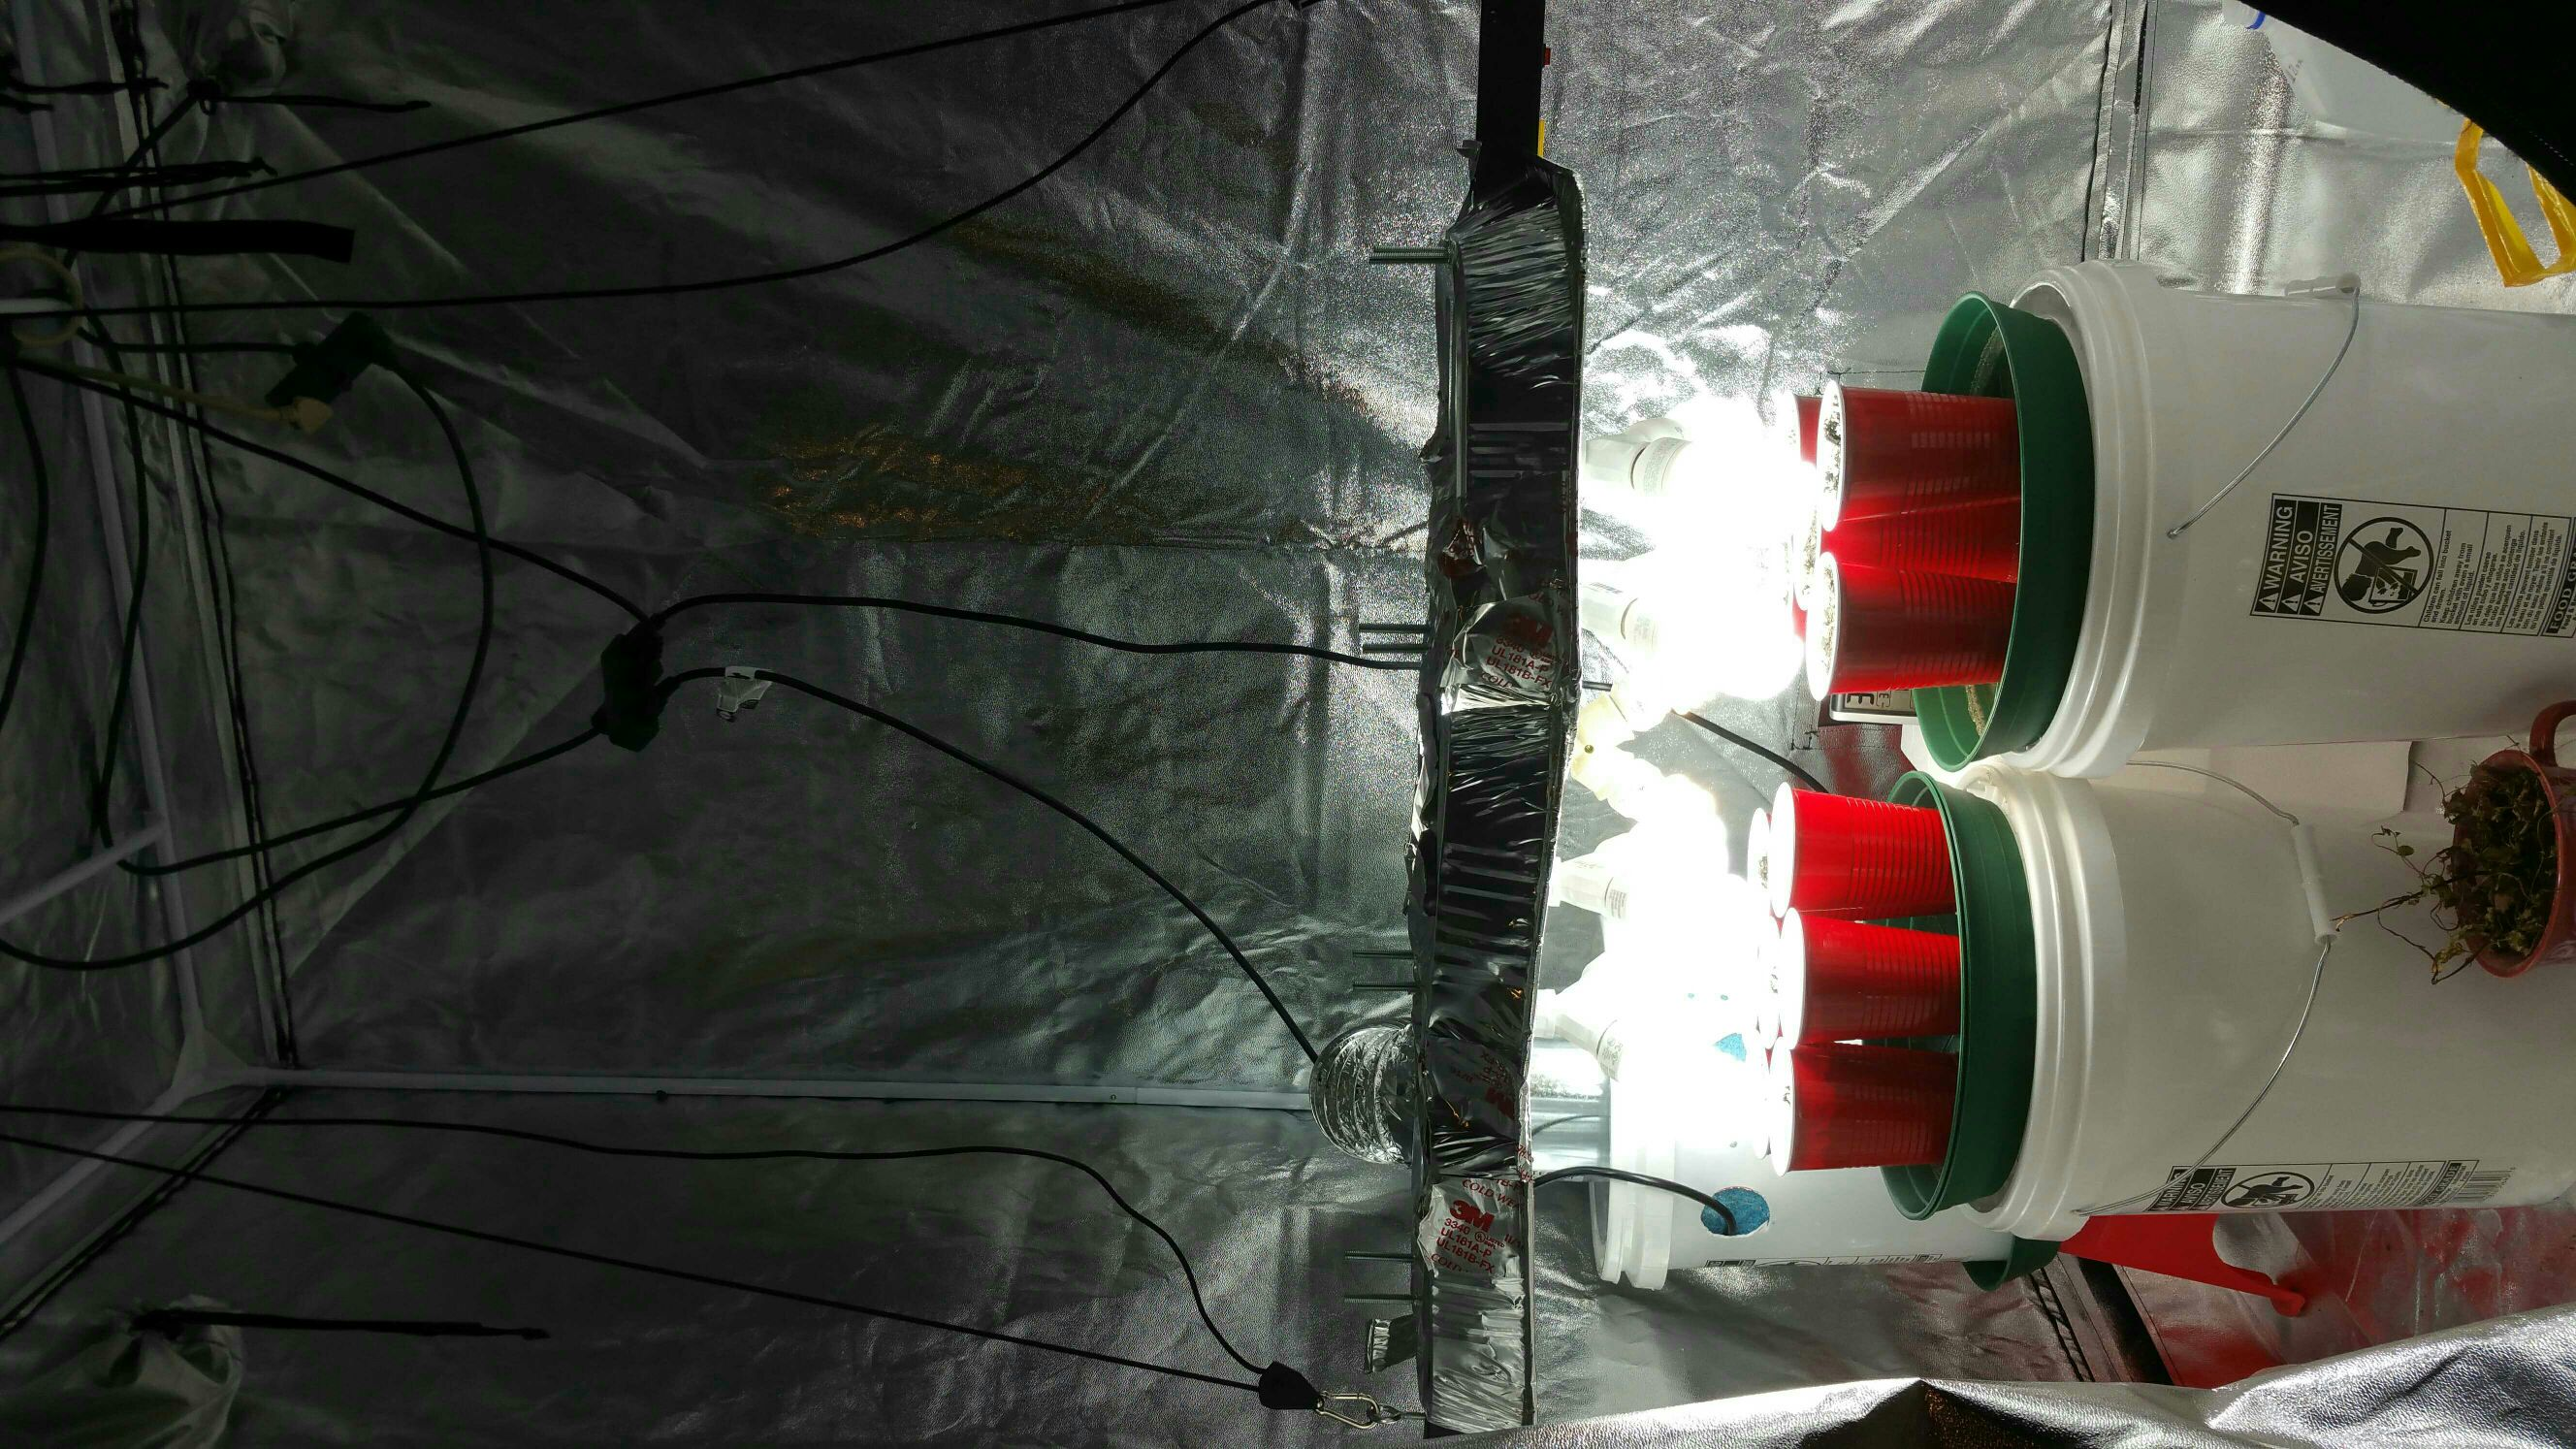 (see below) ... the diy cfl setup reflector is in the way and the led requires 30 to 40 inch distance from seedlings ... & Help with CFL and LED combo | Grasscity Forums